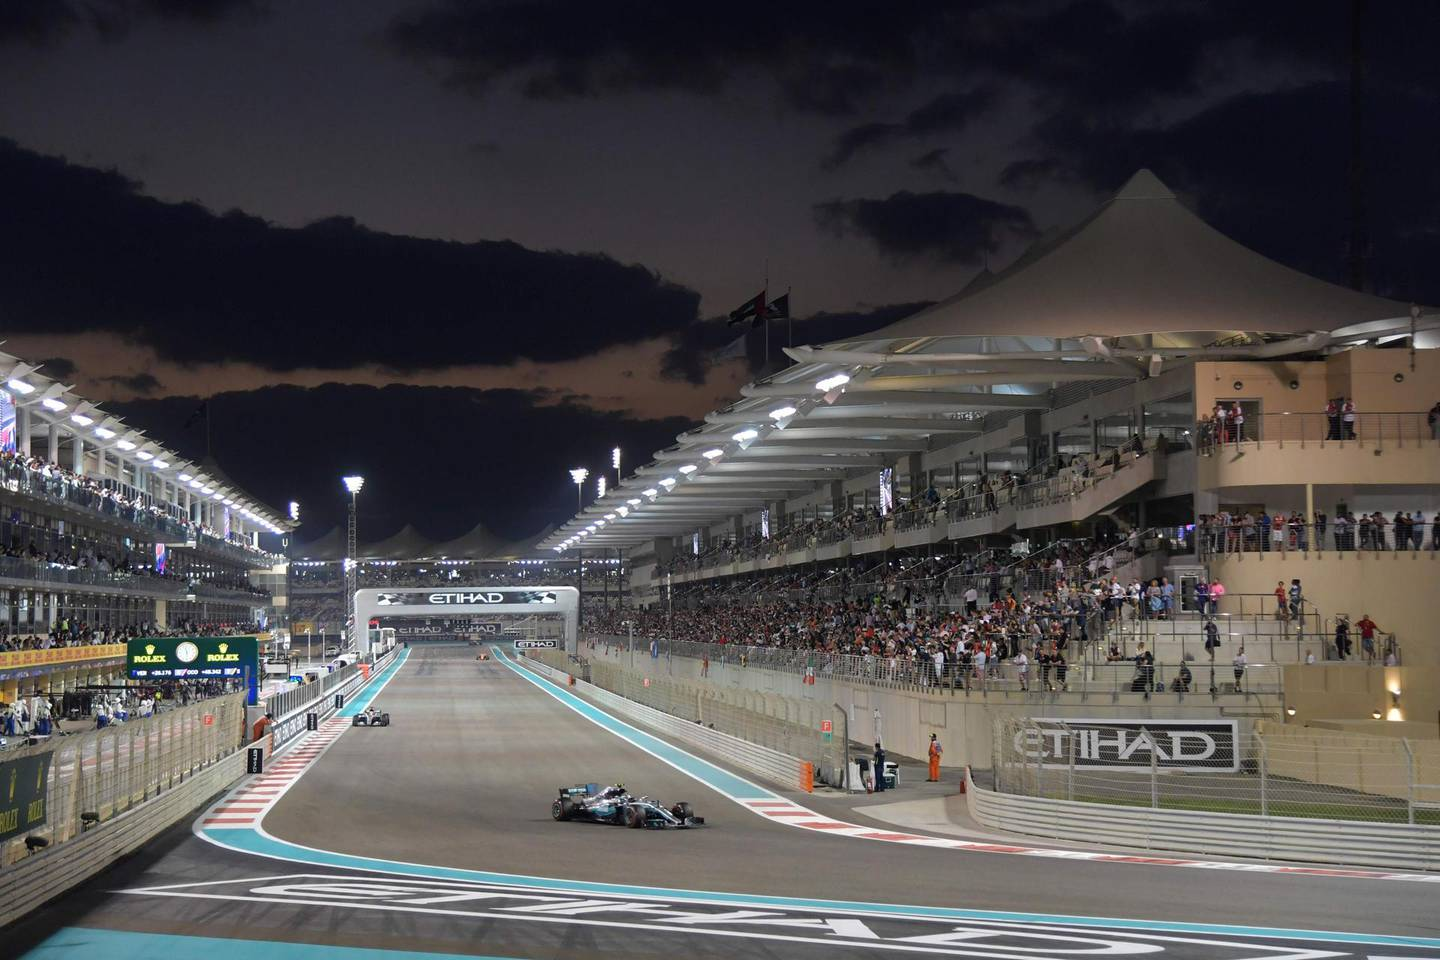 Mercedes' Finnish driver Valtteri Bottas steers his car during the Abu Dhabi Formula One Grand Prix at the Yas Marina circuit on November 26, 2017. / AFP PHOTO / Giuseppe CACACE